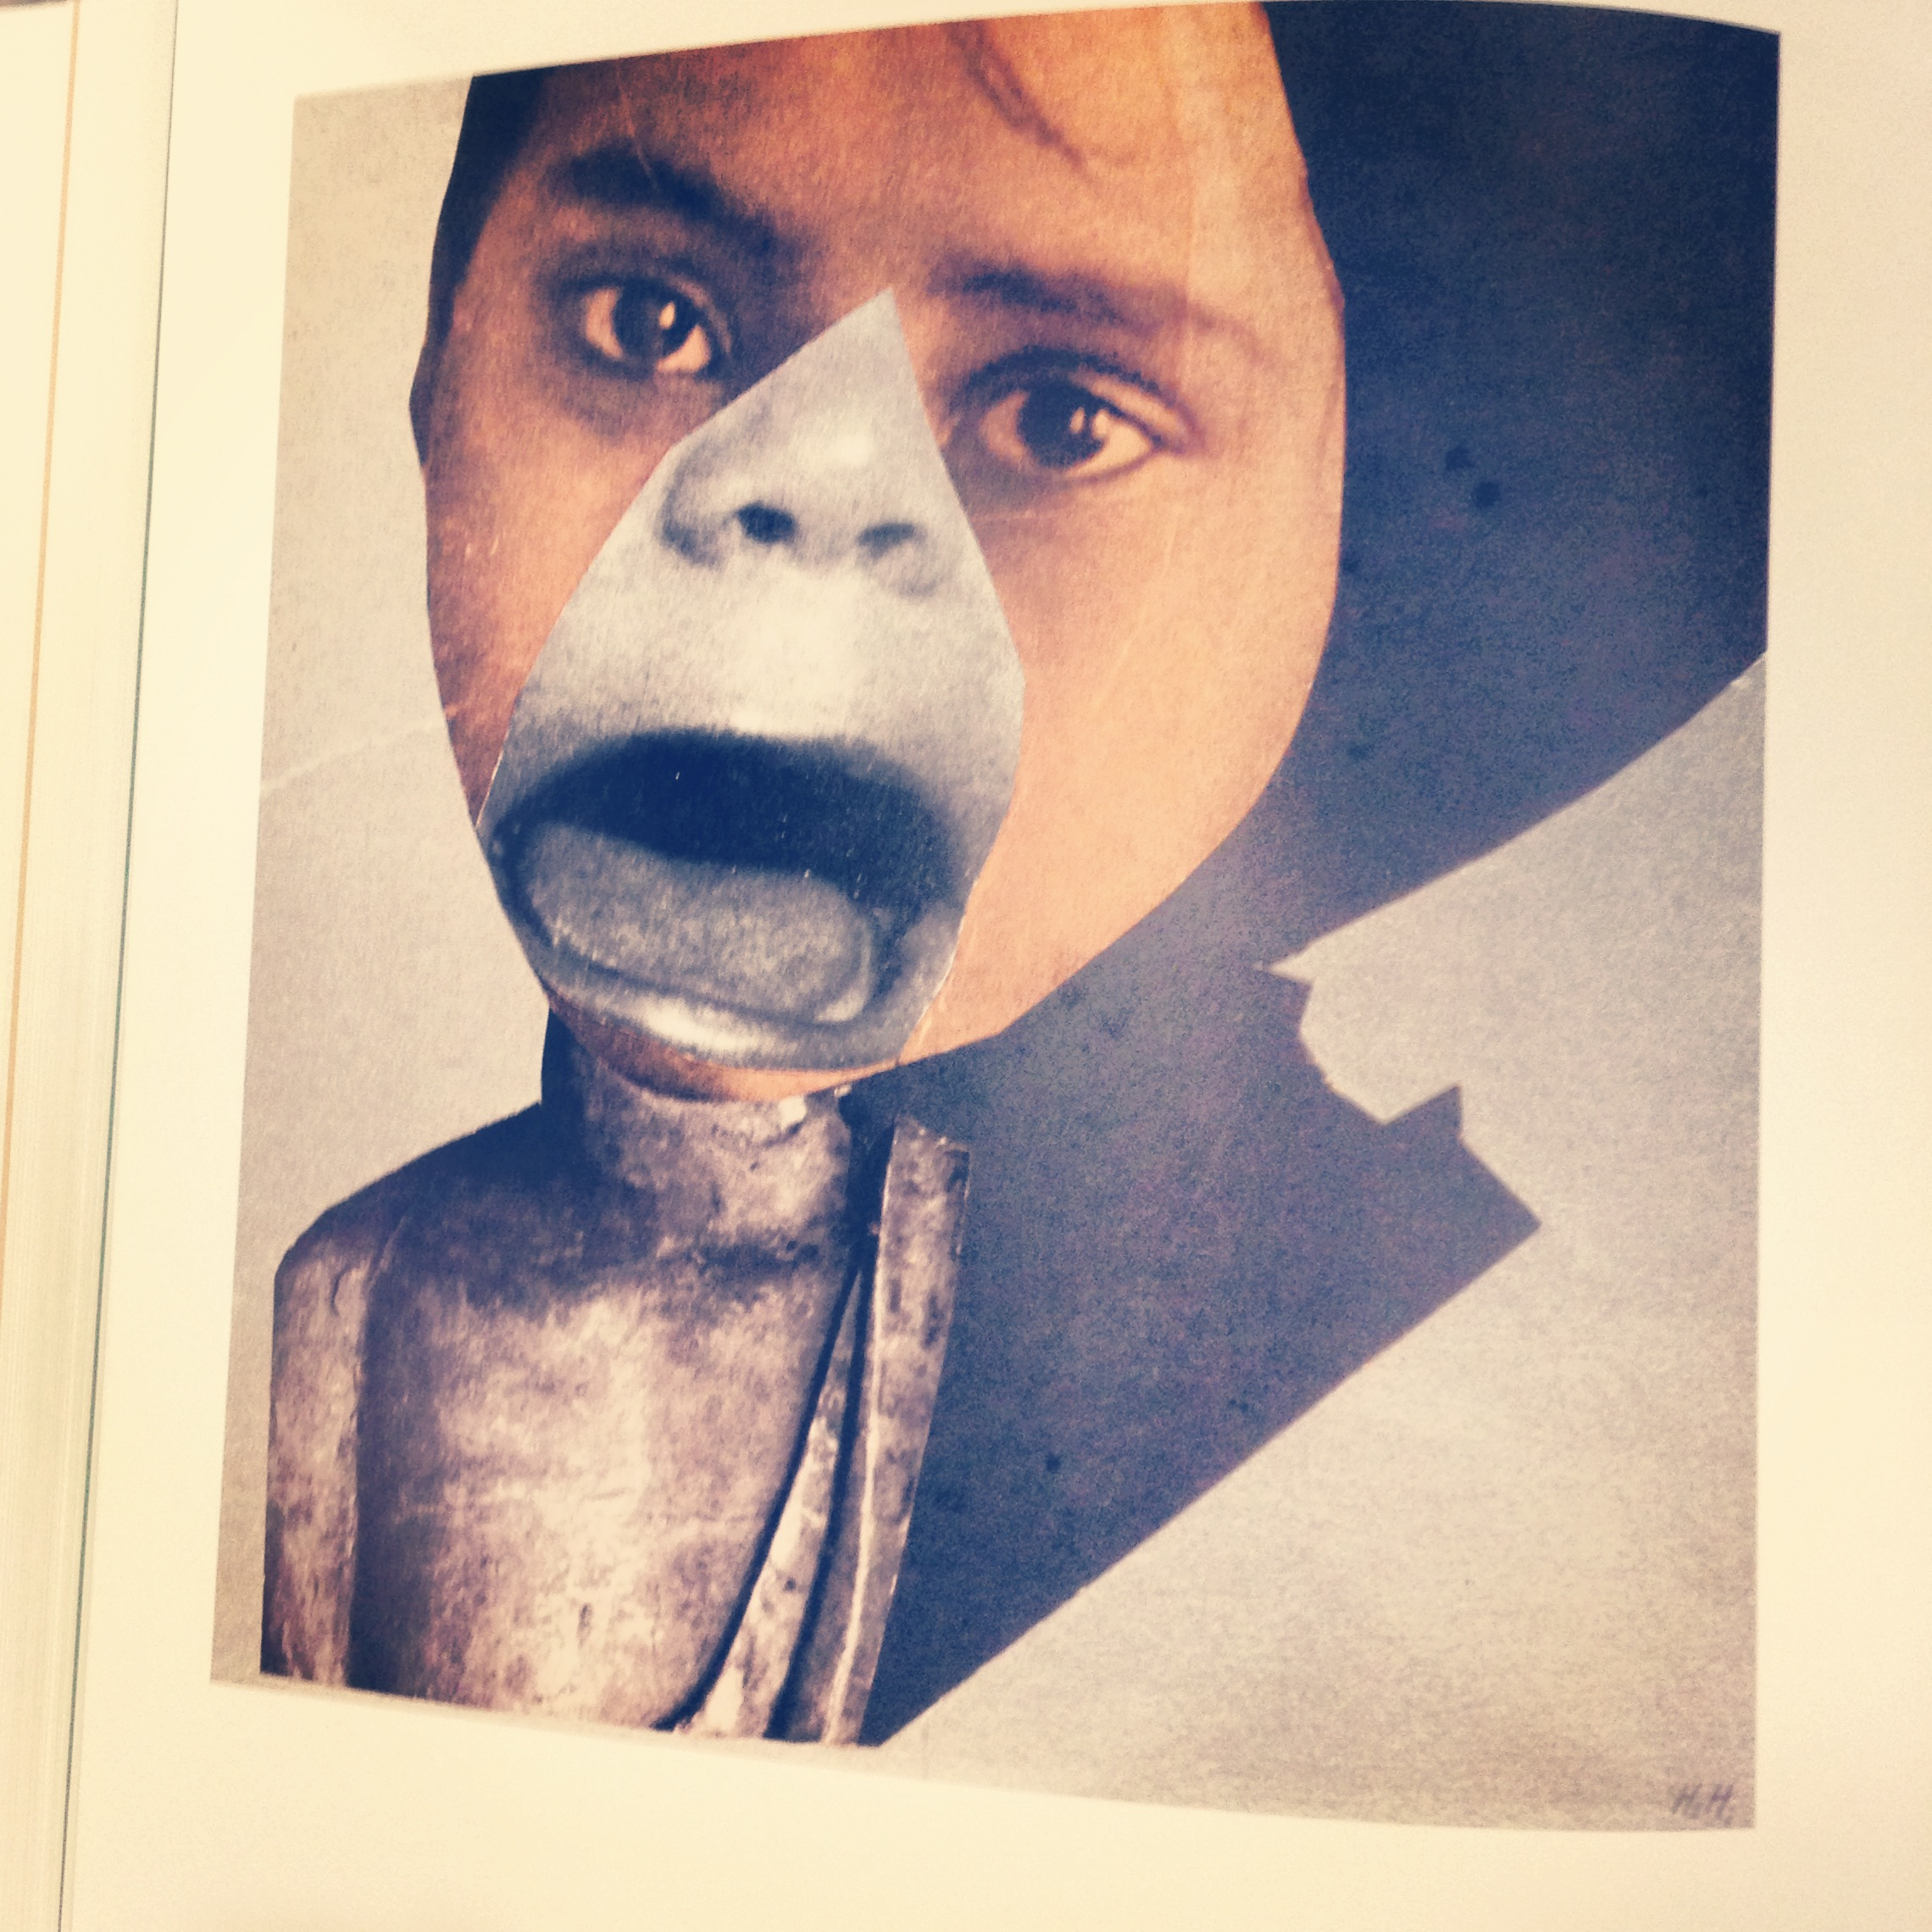 A2 Photography | Unit 4 | Unusual Portraiture | Hannah Hoch ...